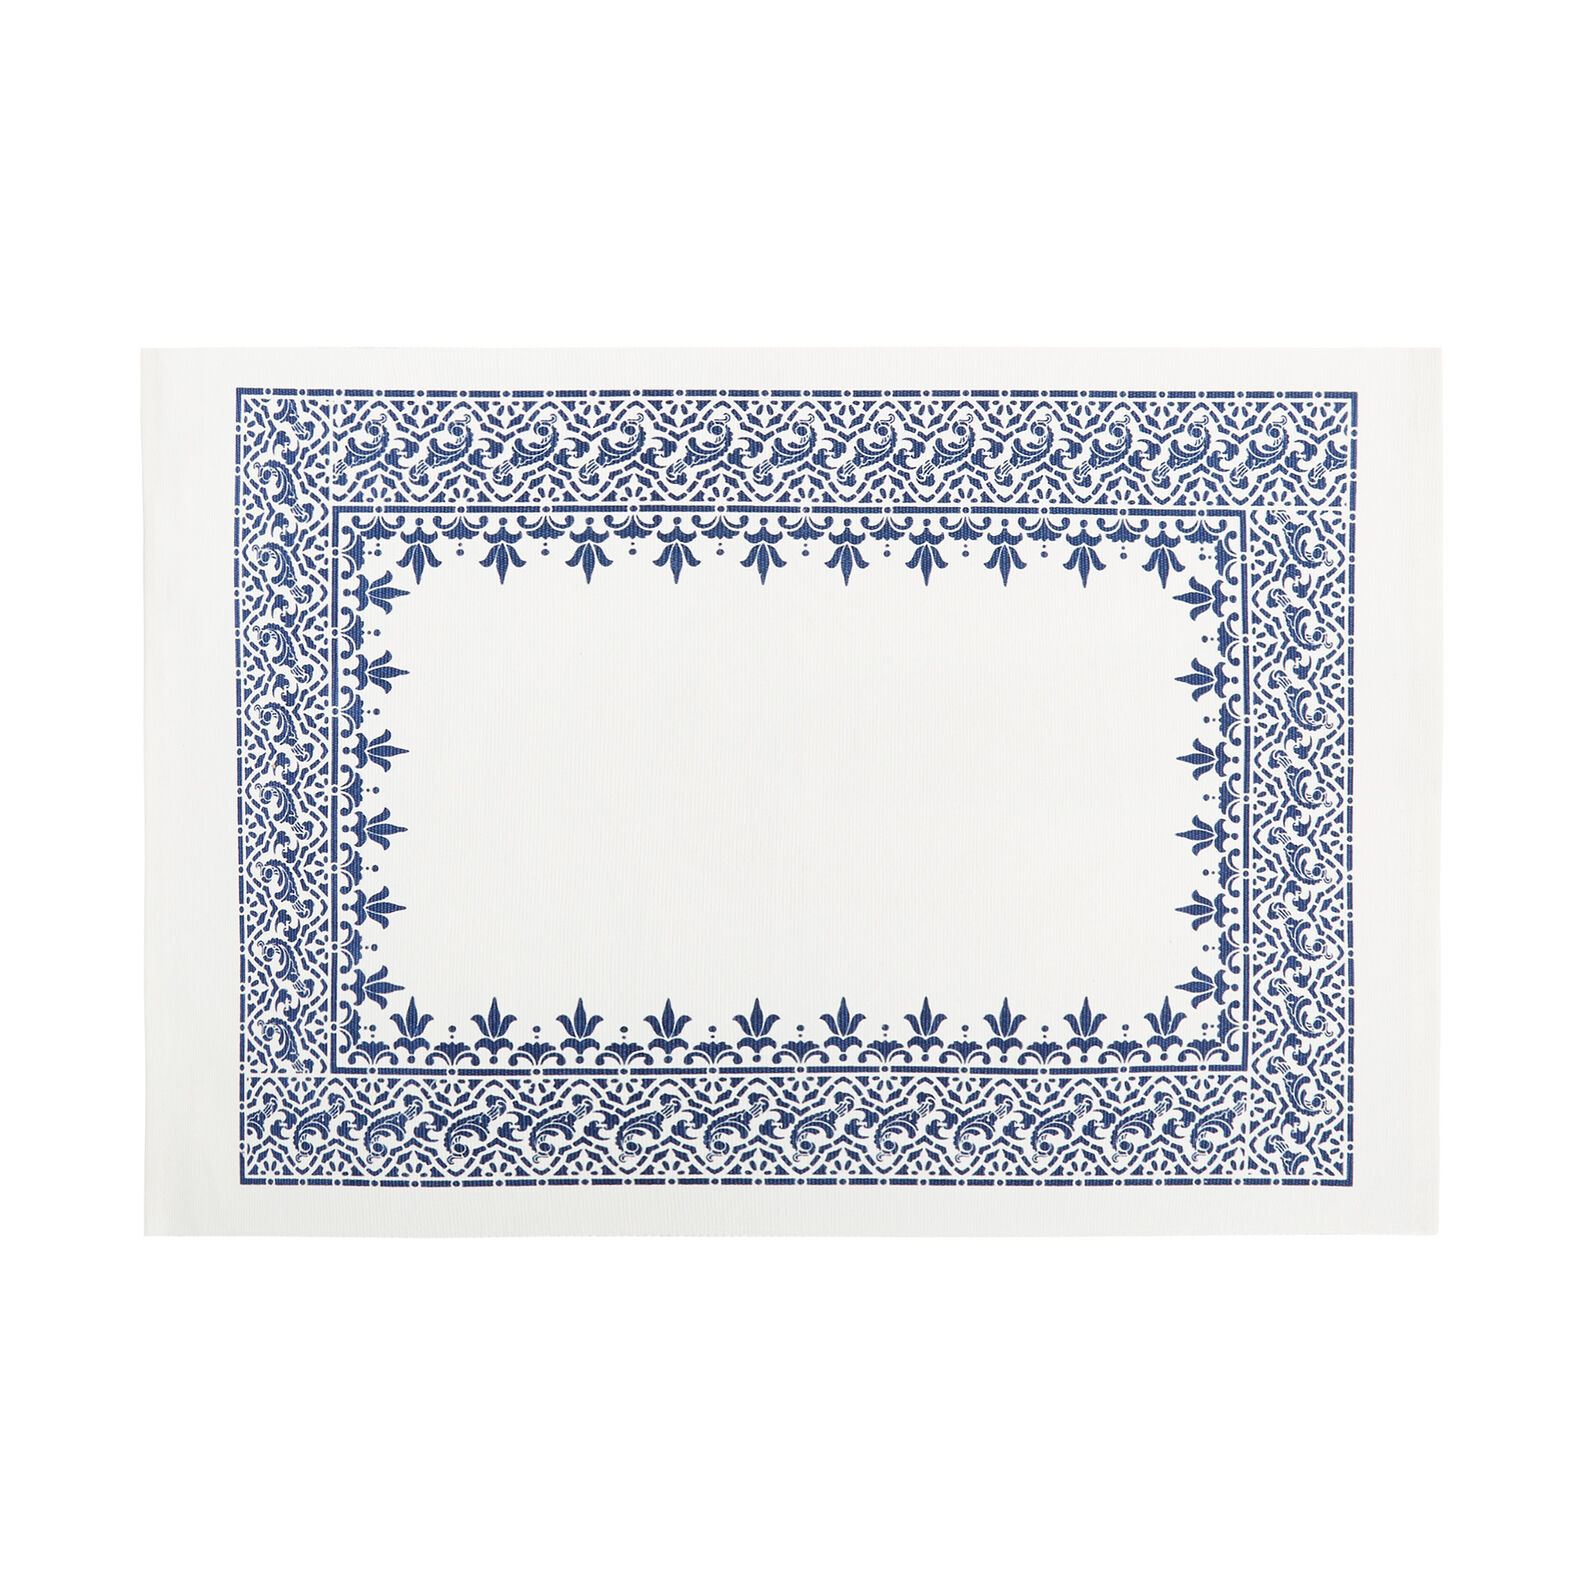 100% cotton table mat with printed edging